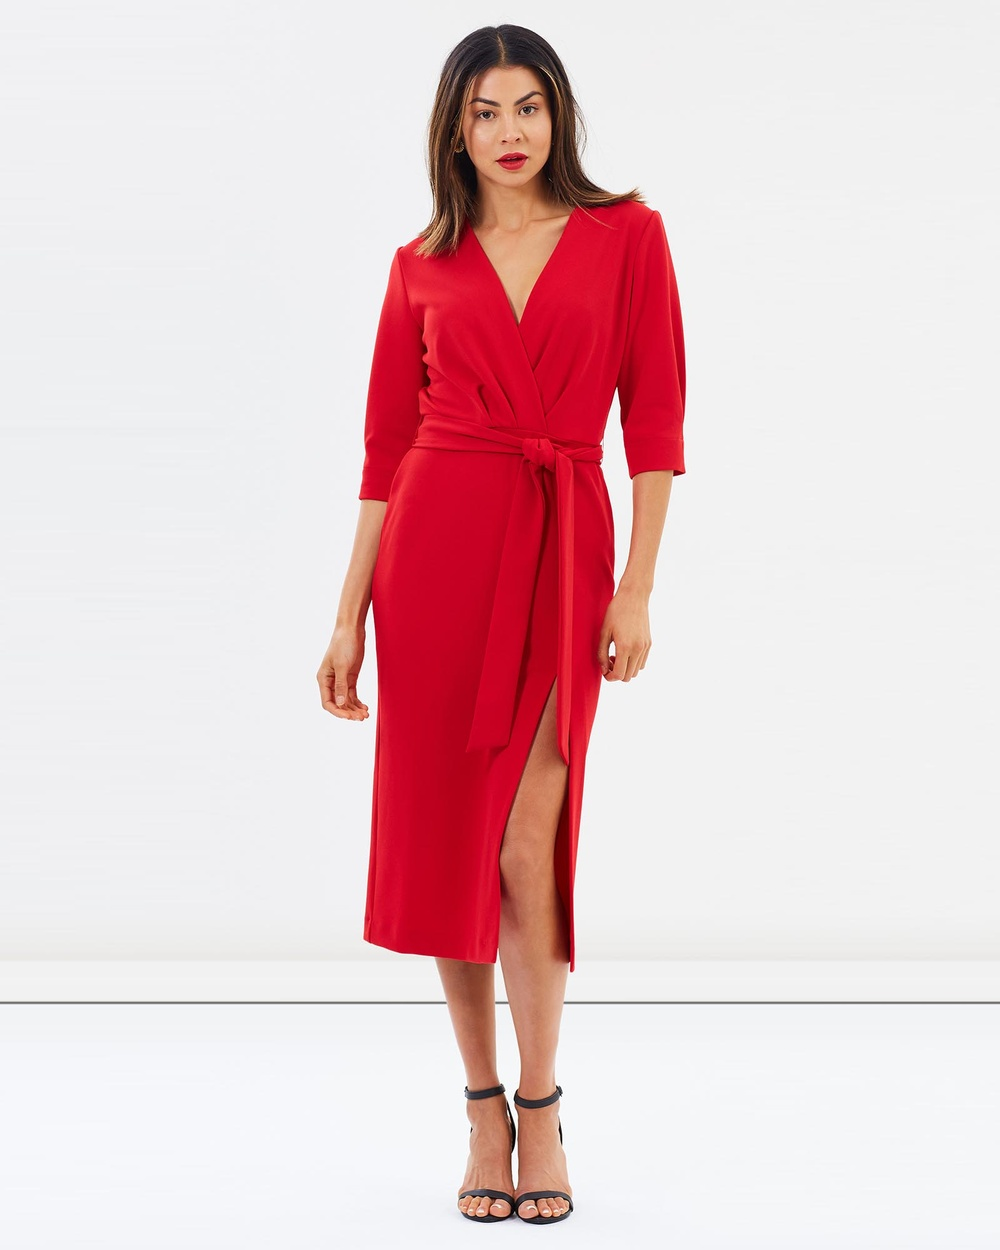 Jewels + Grace Adelle Dresses Red Adelle